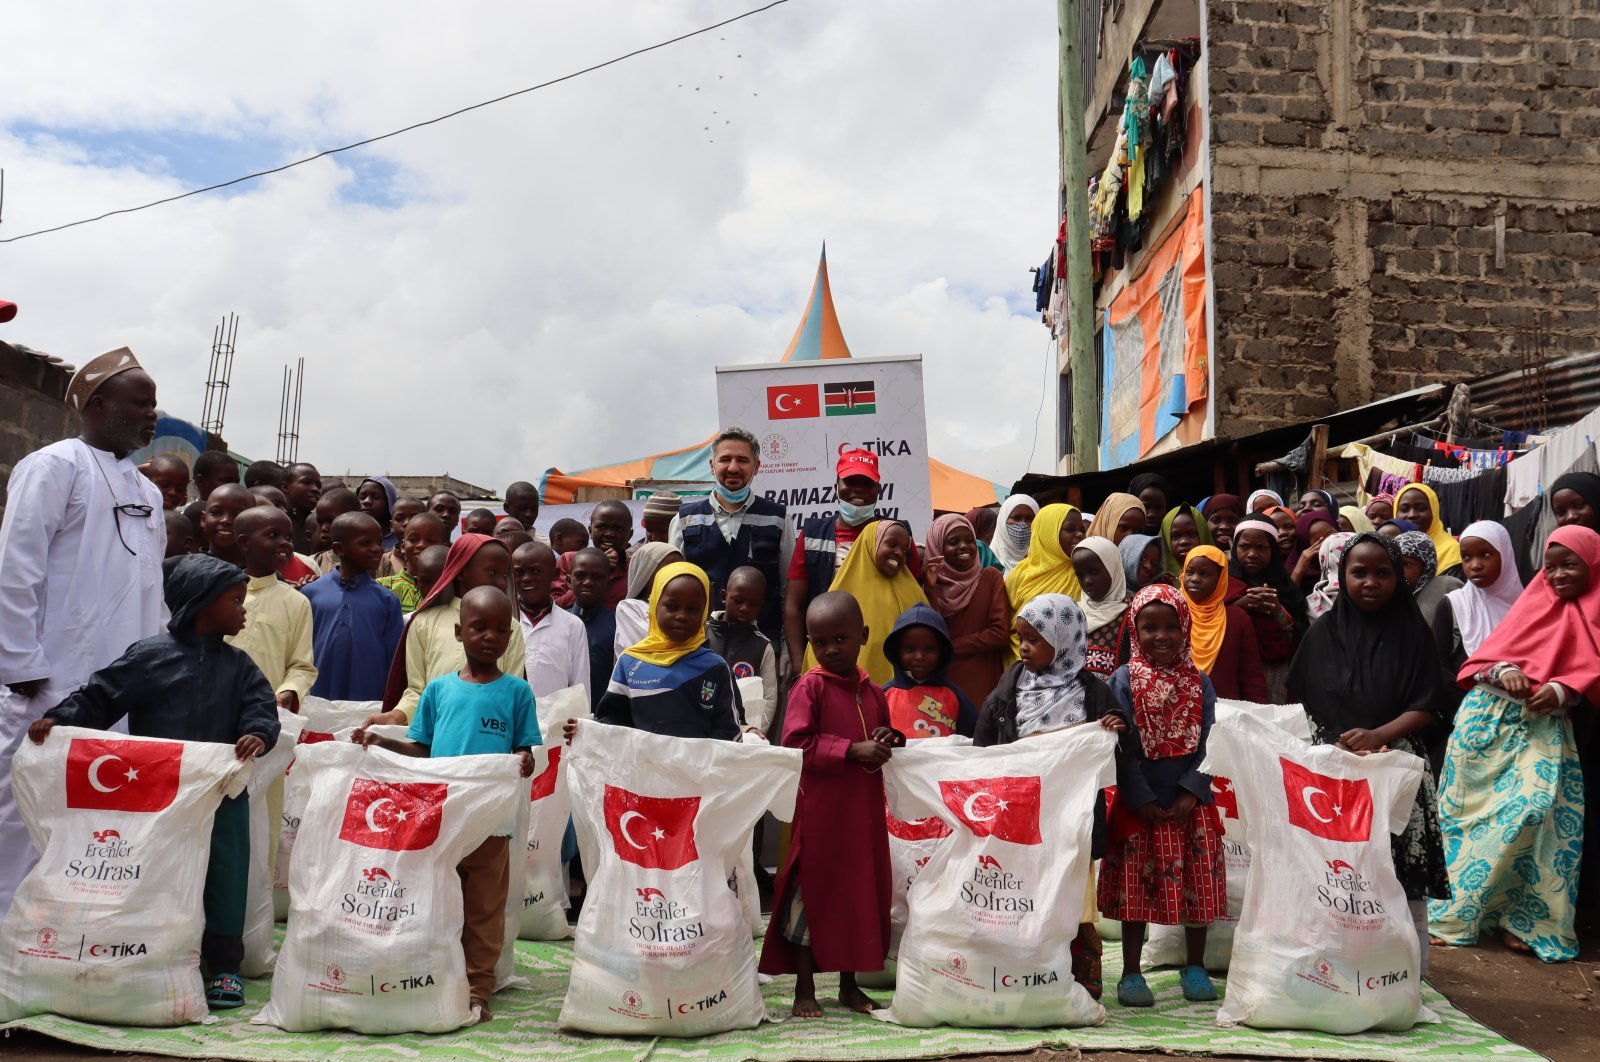 The Turkish Cooperation and Coordination Agency (TIKA) distributed food and hygiene packages in Nairobi, Kenya, April 24, 2021. (AA Photo)